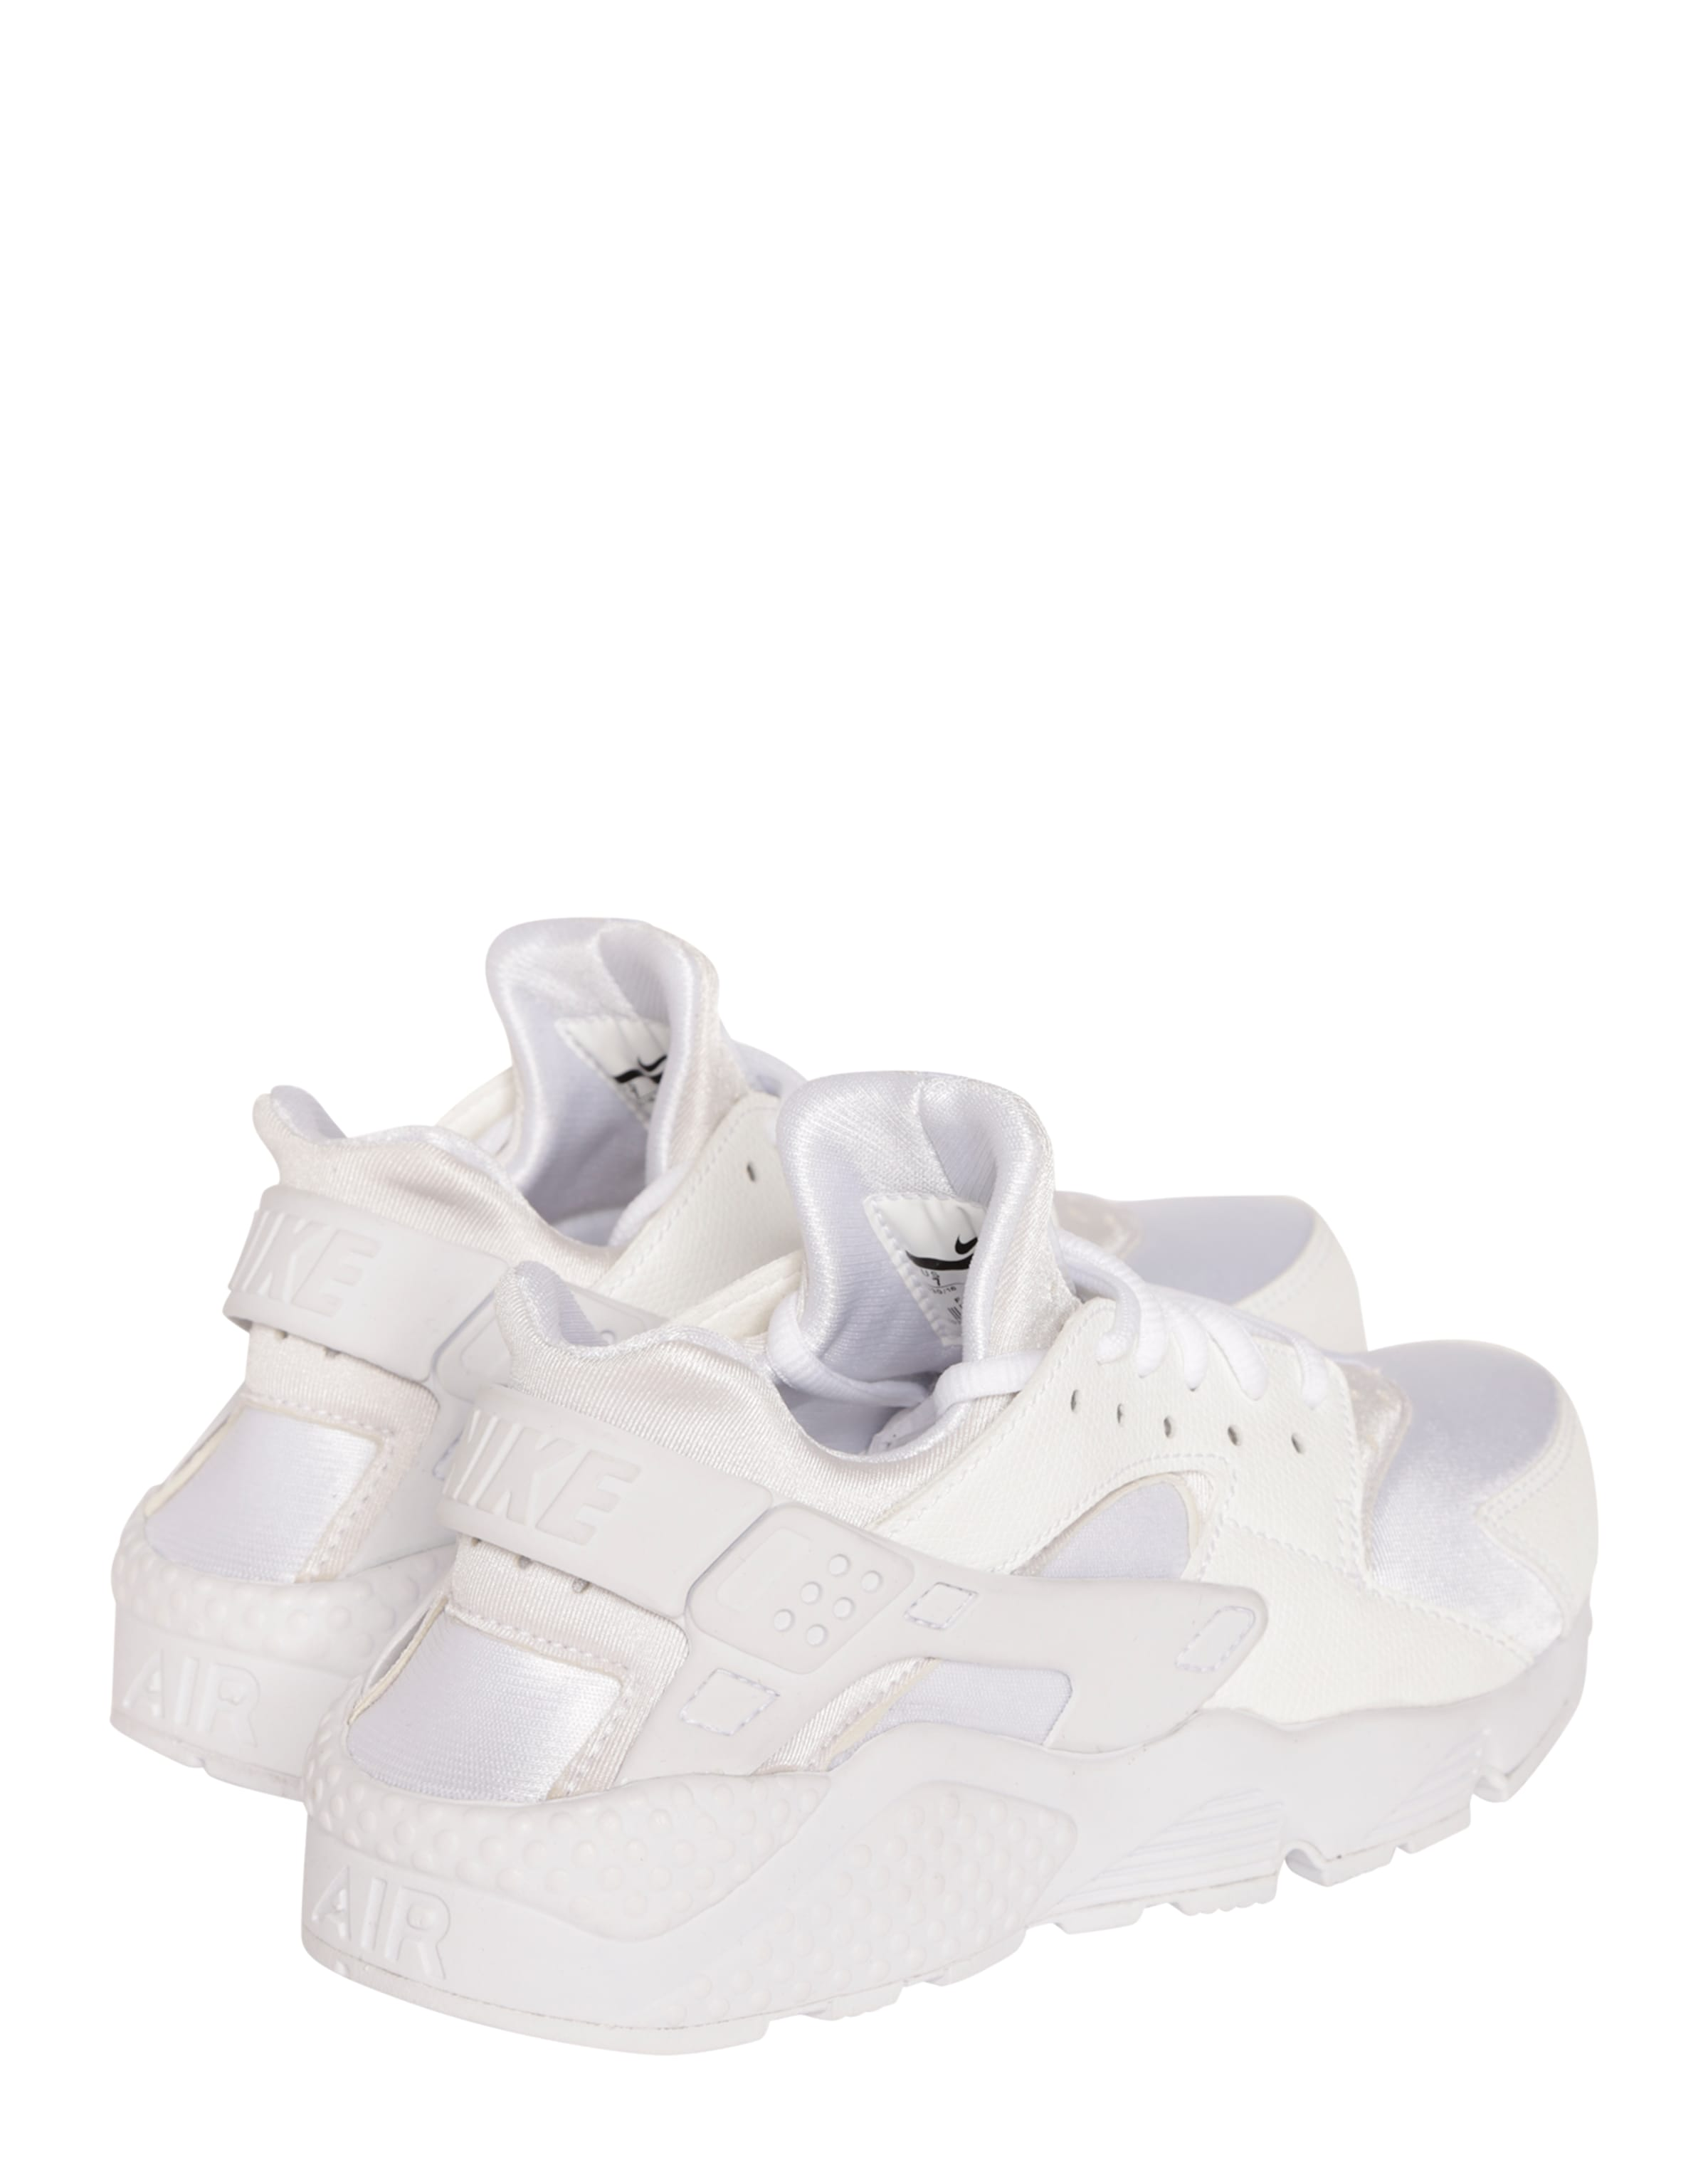 Sportswear Baskets Basses Huarache Blanc Nike 'air En Run' WD29IbHeEY